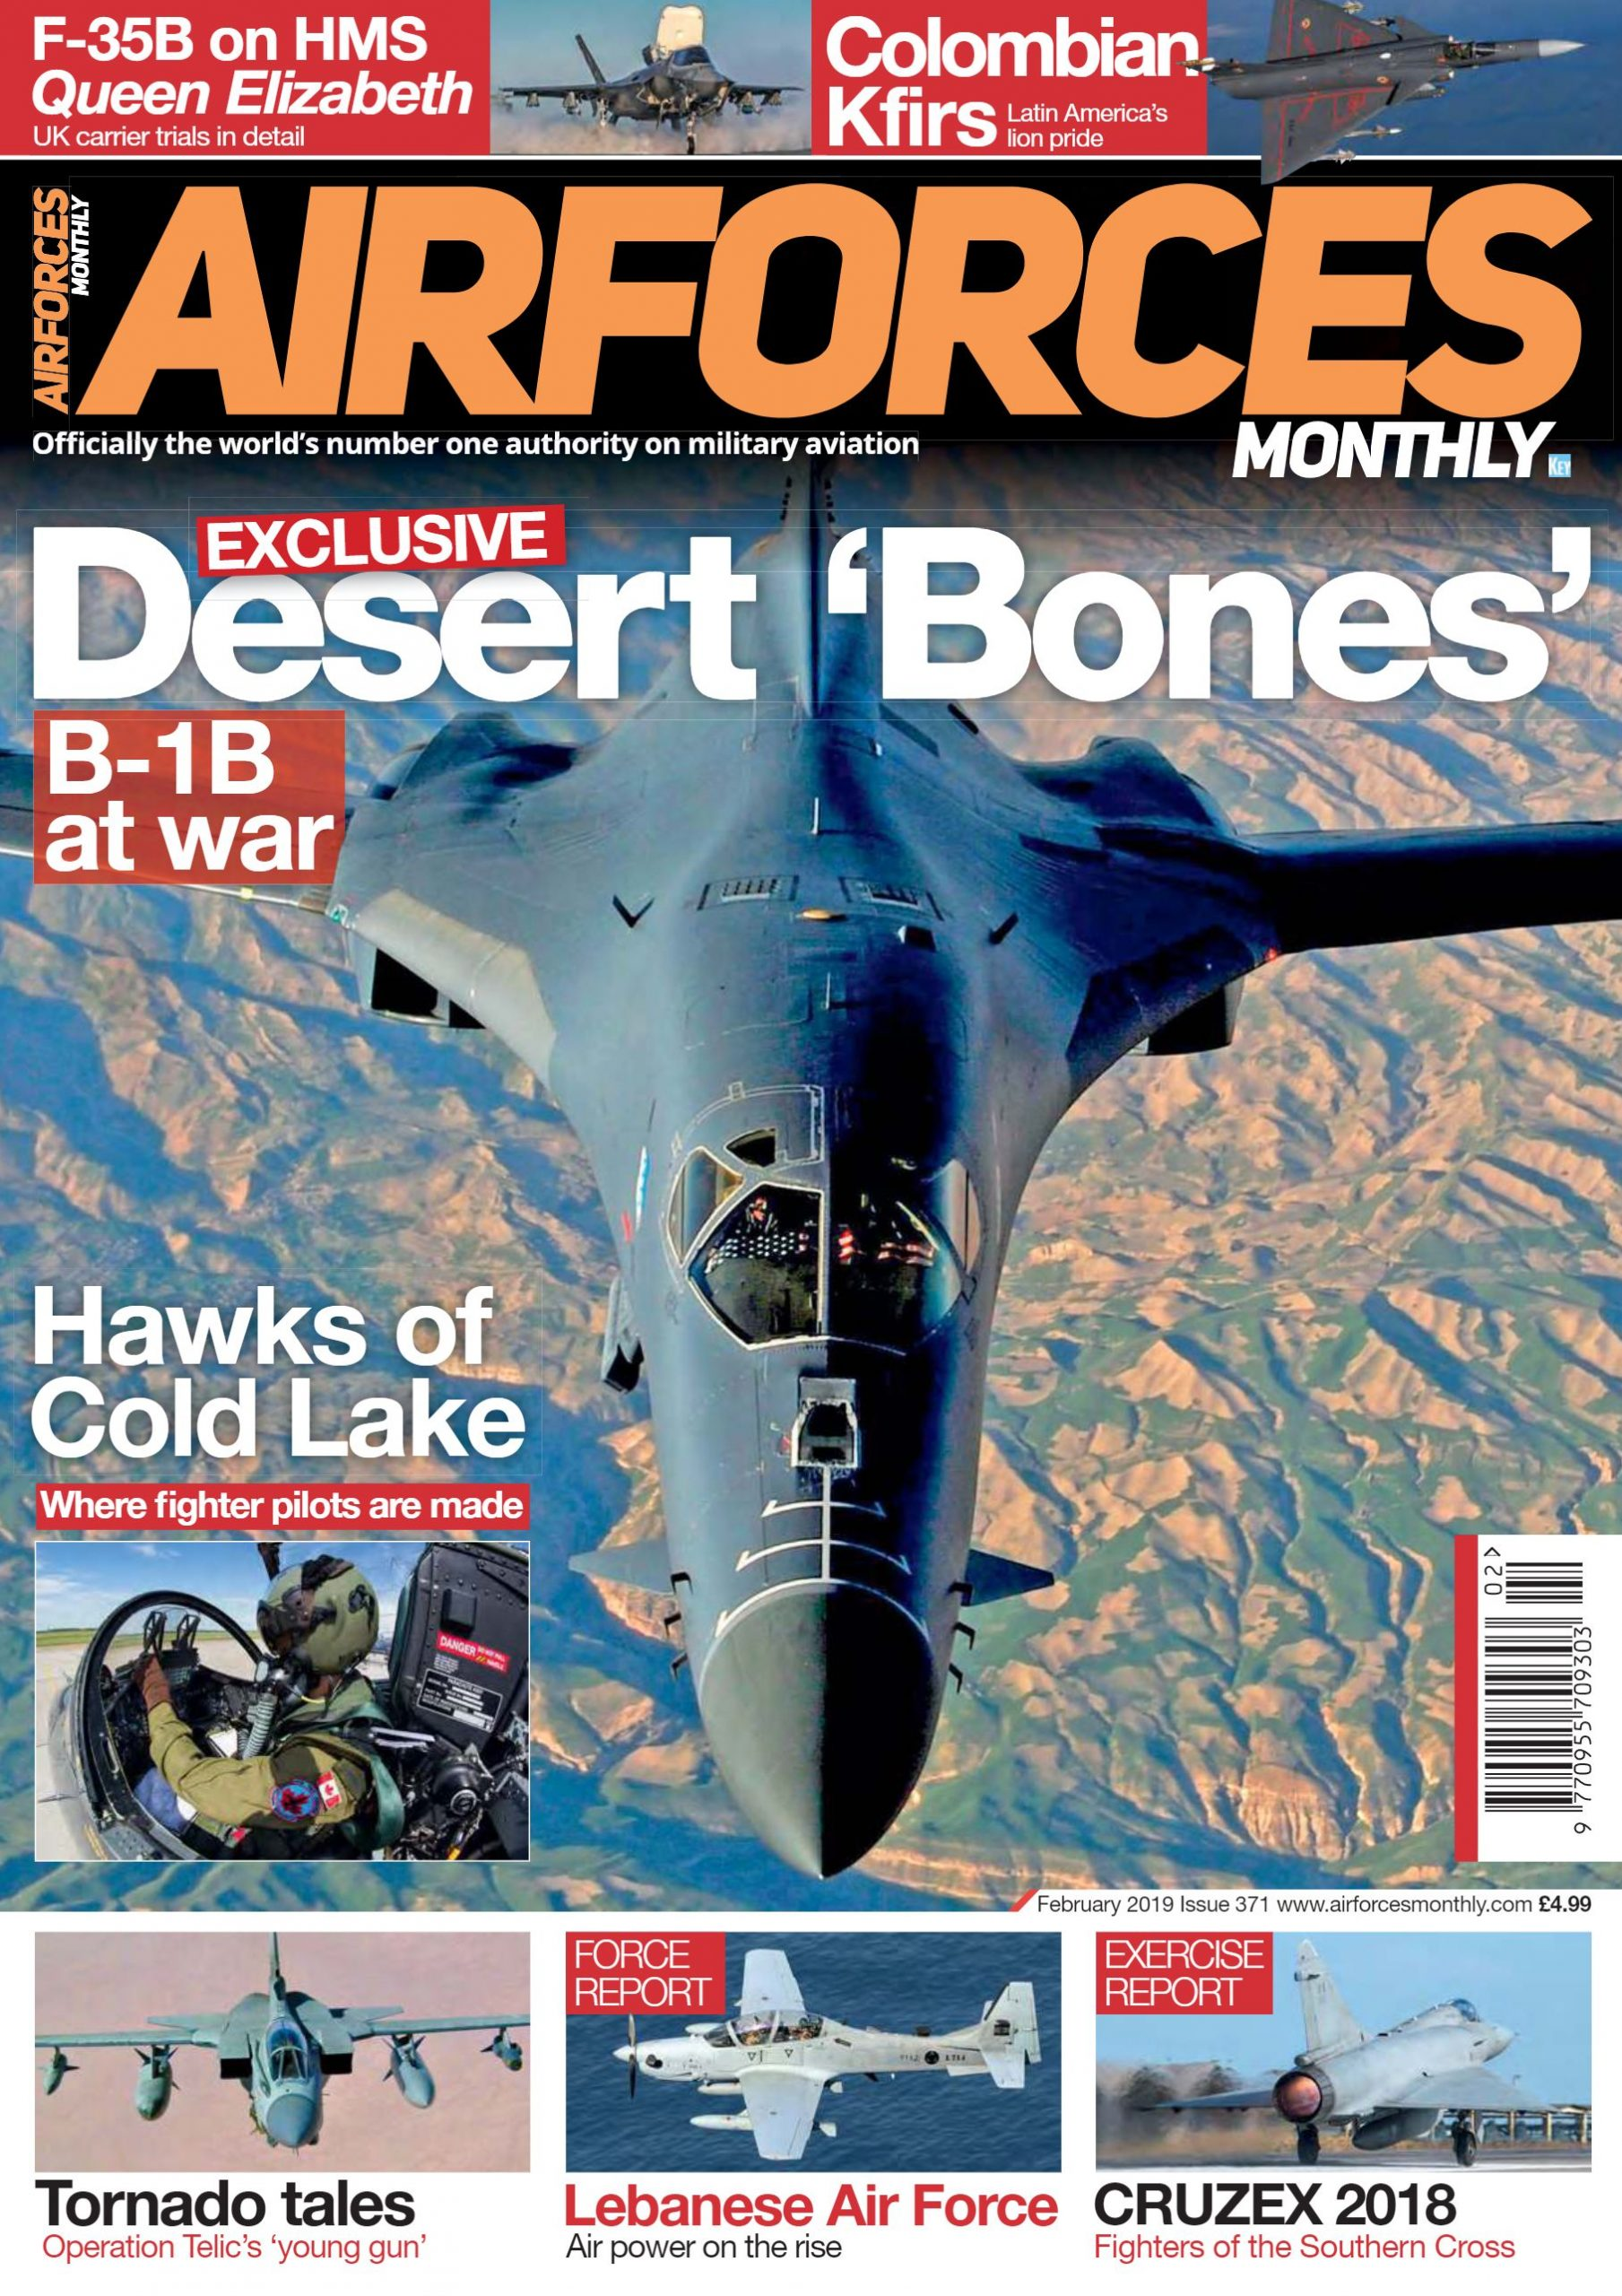 AirForces_Monthly_2019-02 (1)